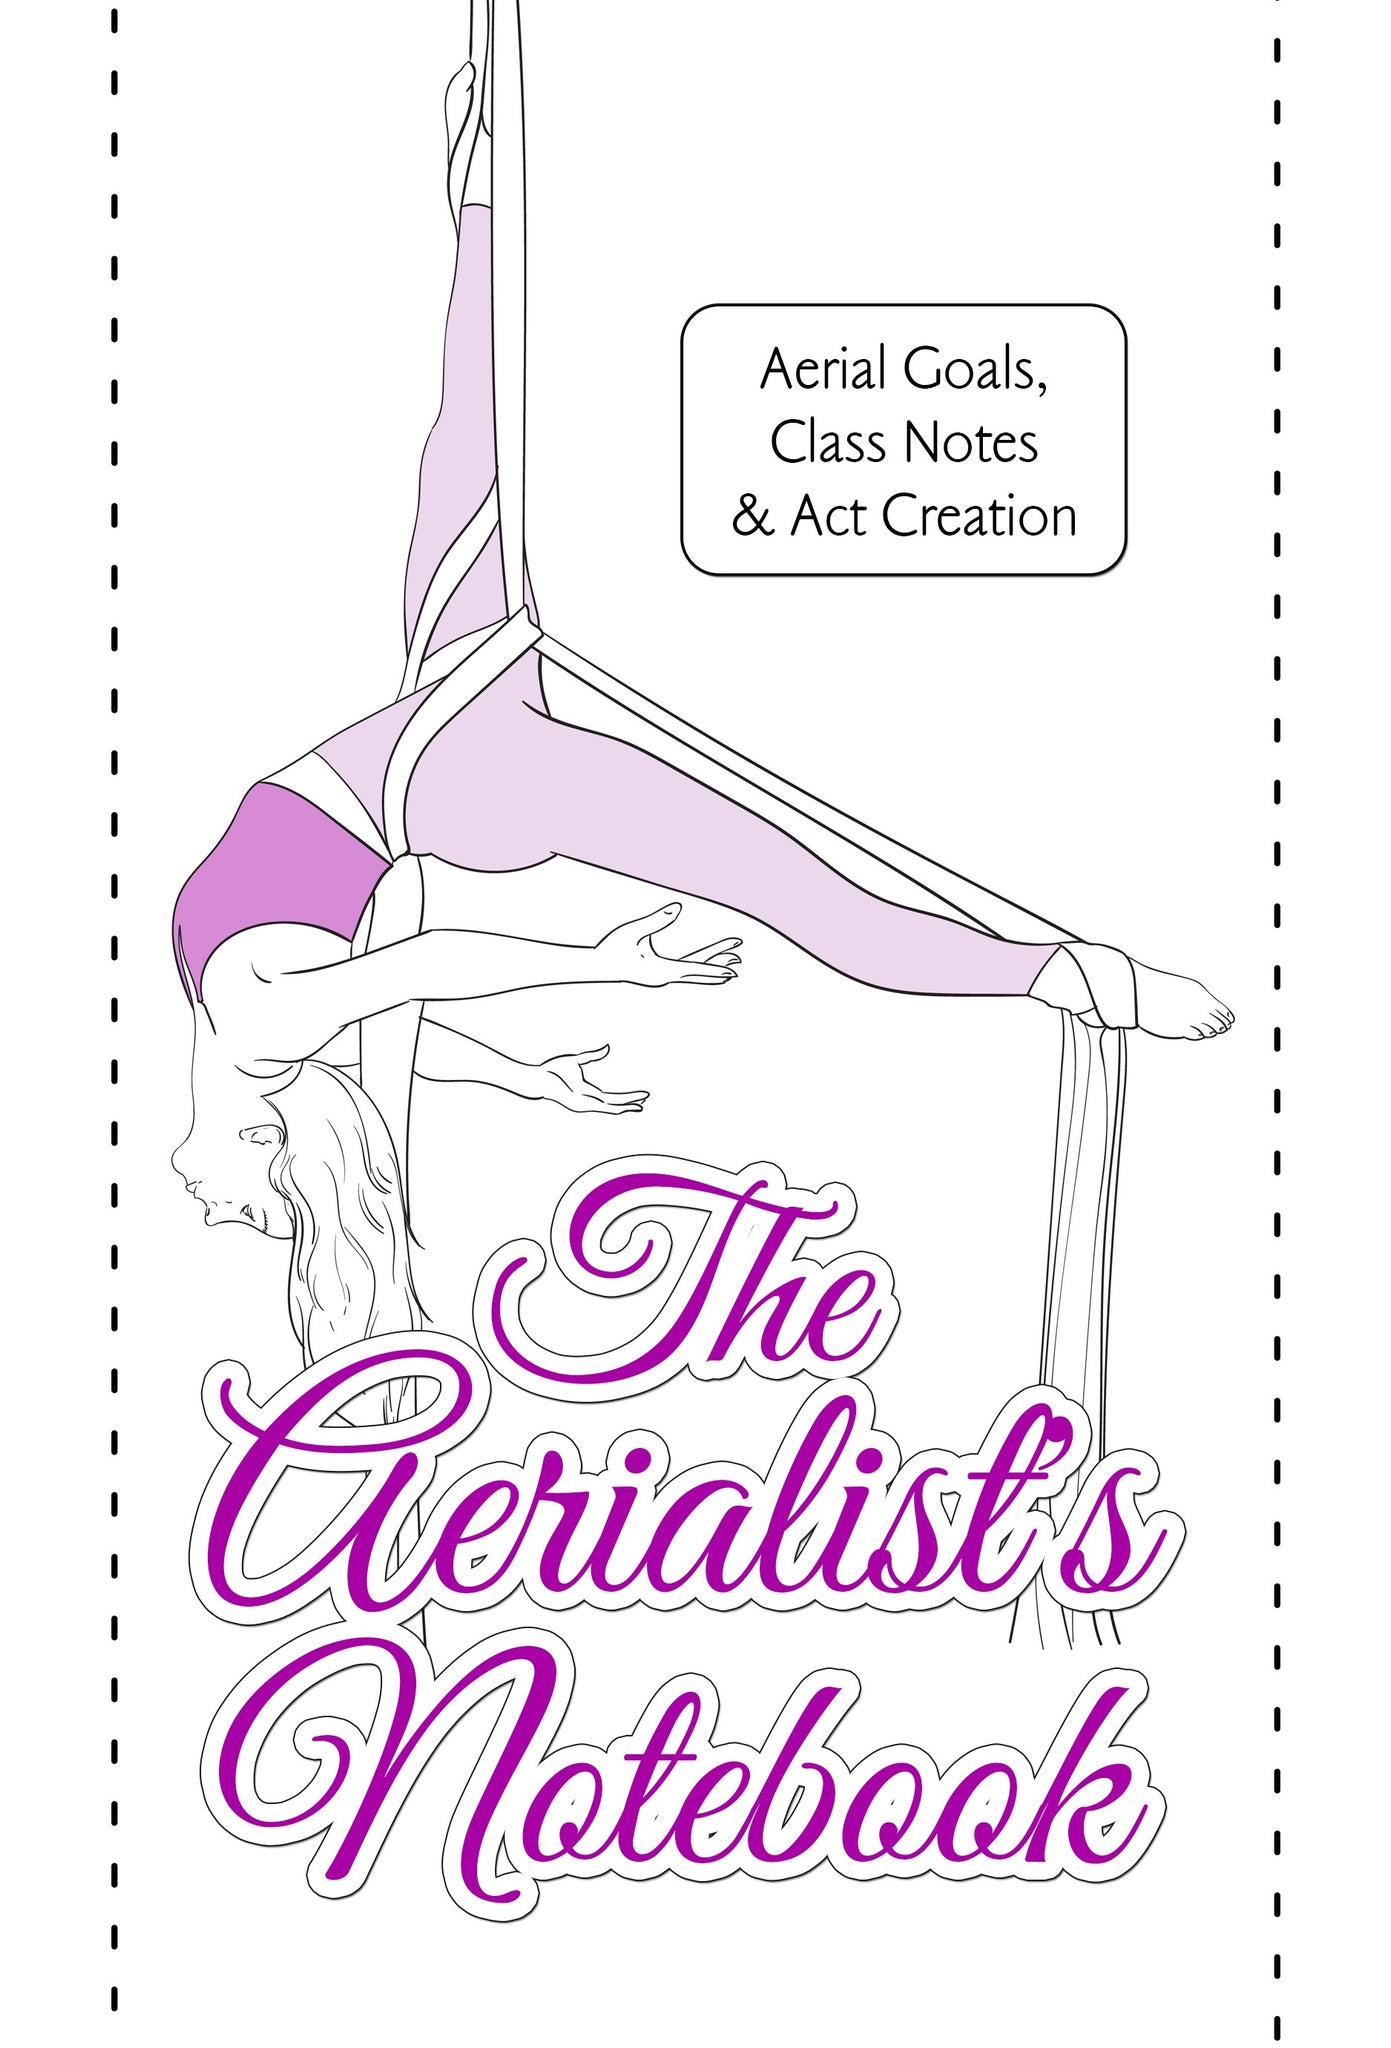 The Aerialist's Notebook